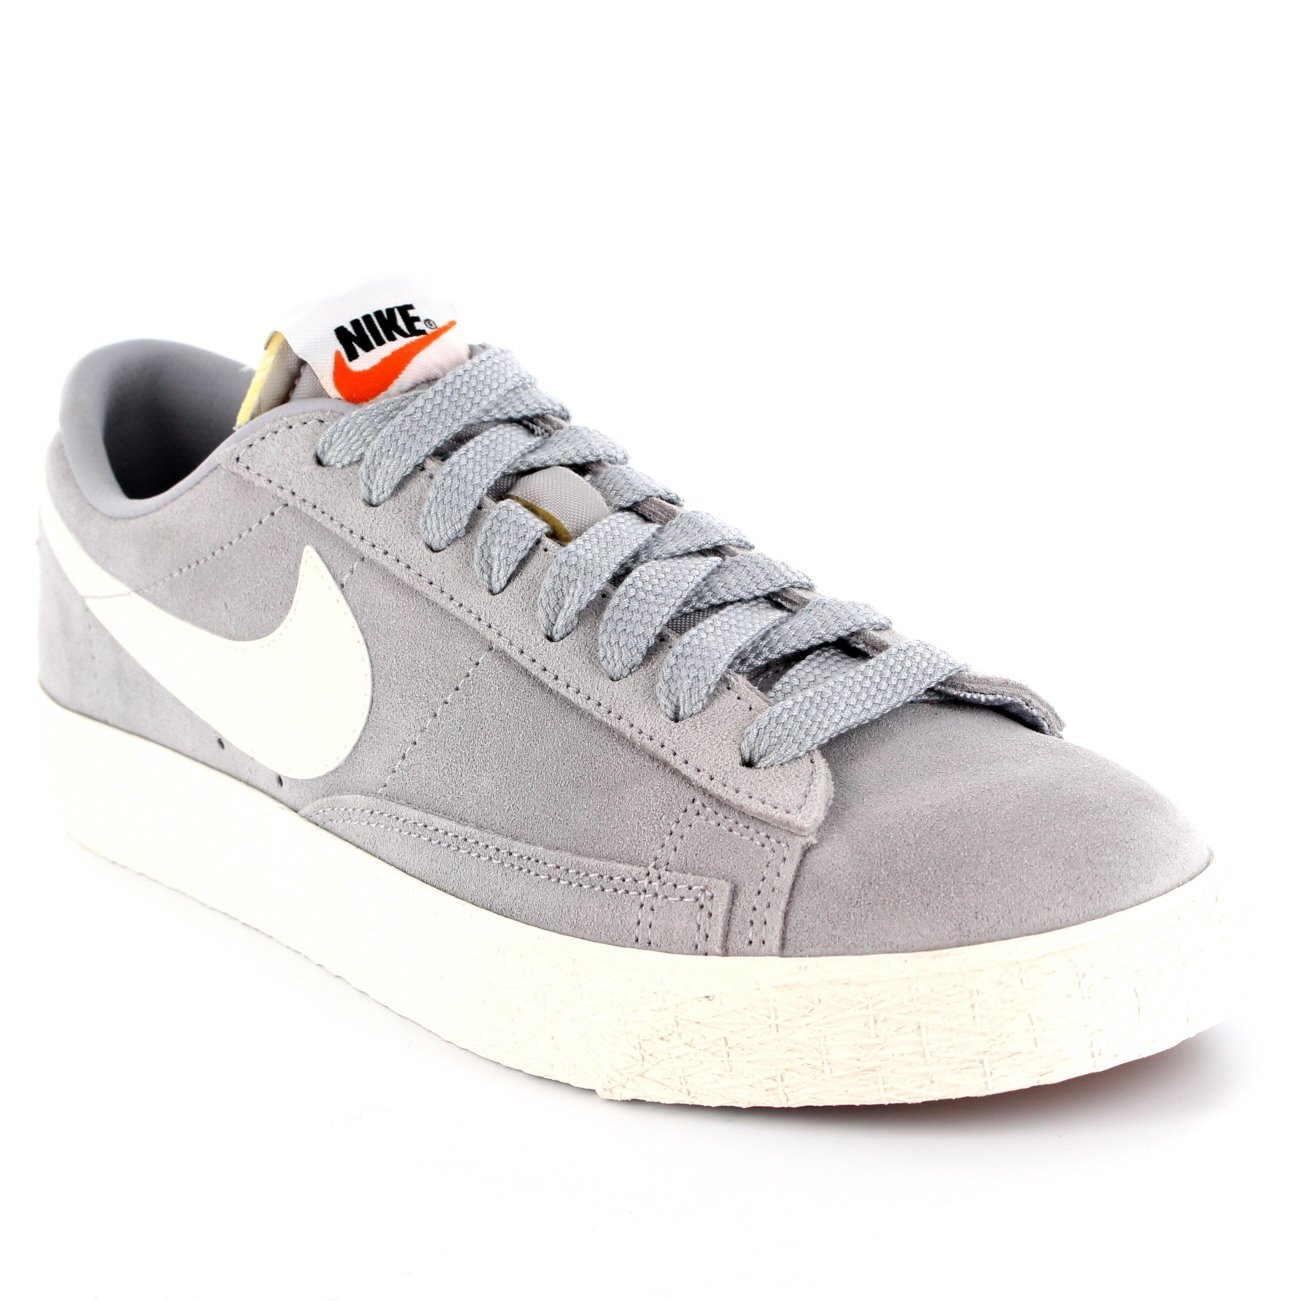 buy popular 930b2 c9f1c Amazon.com | Nike Mens Blazer Low Suede Low Cut Shoe Vintage ...